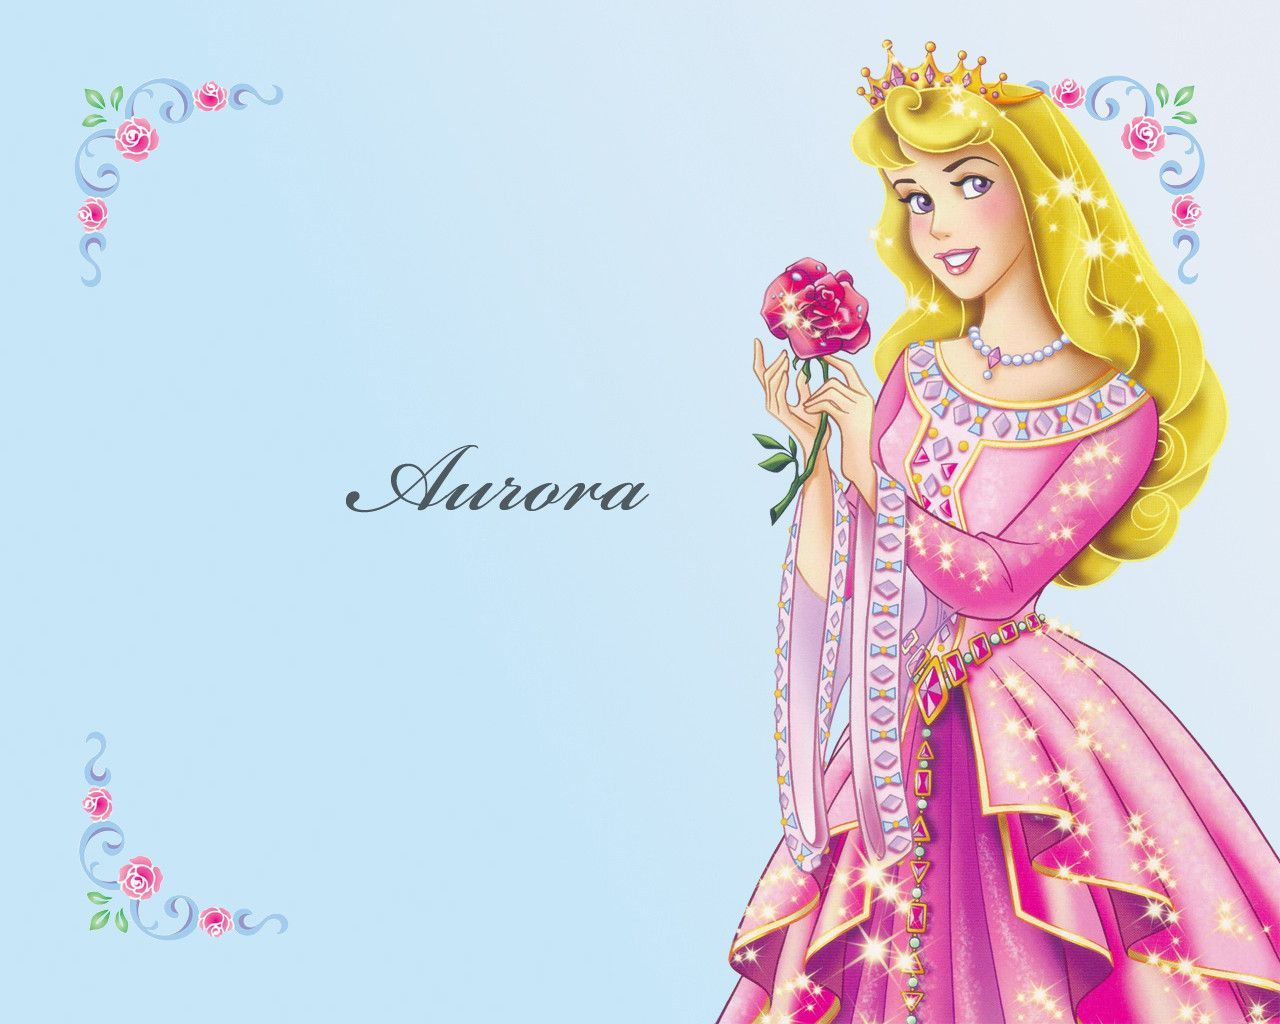 Disney com princess castle backgrounds disney princesses html code - Disney Princesses Wallpapers Holidays And Observances 1024 768 Princess Image Wallpapers 51 Wallpapers